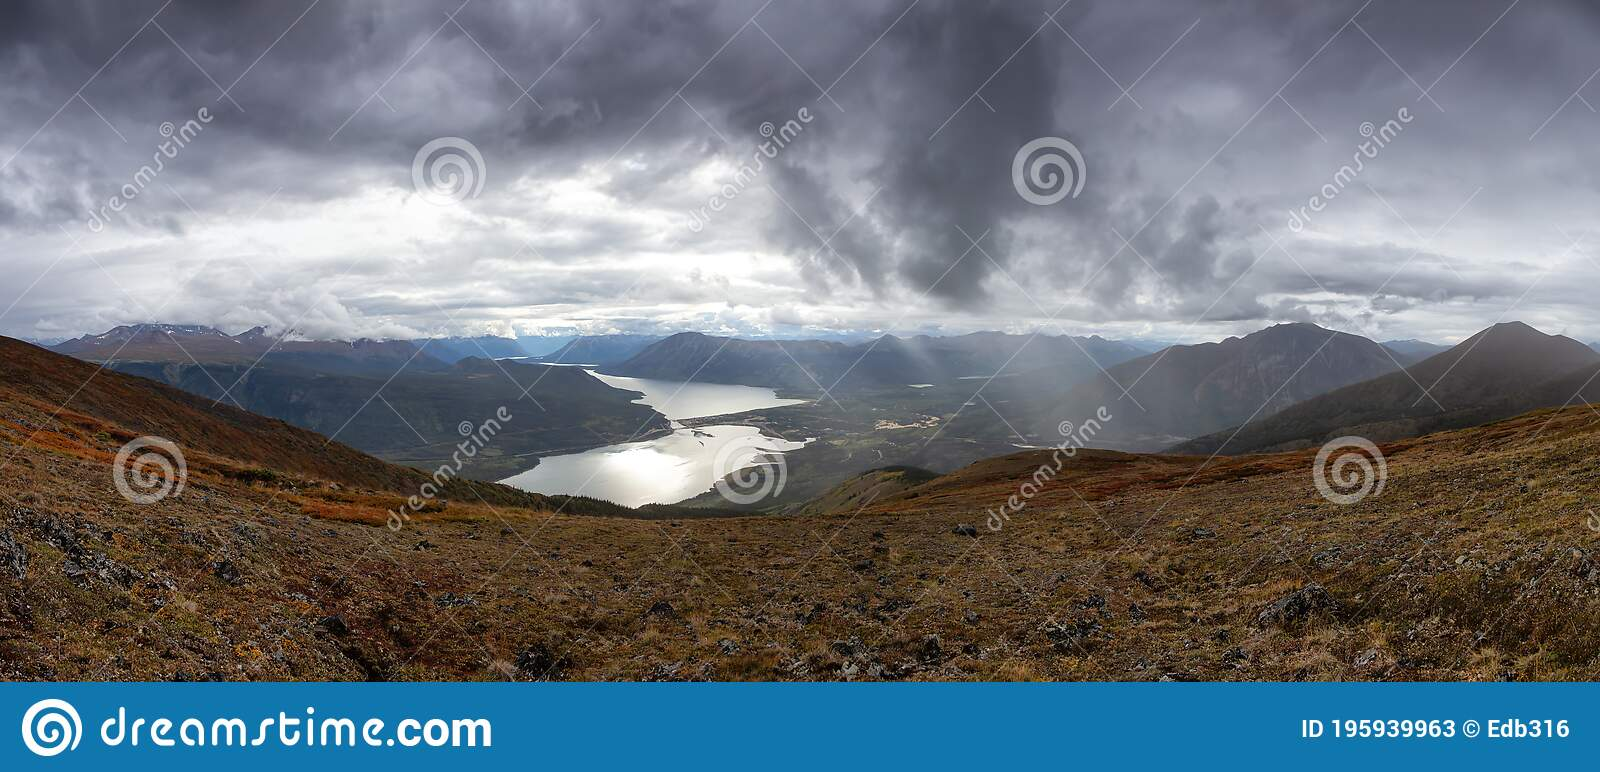 Nature In Yukon Canada Stock Image Image Of Clouds 195939963